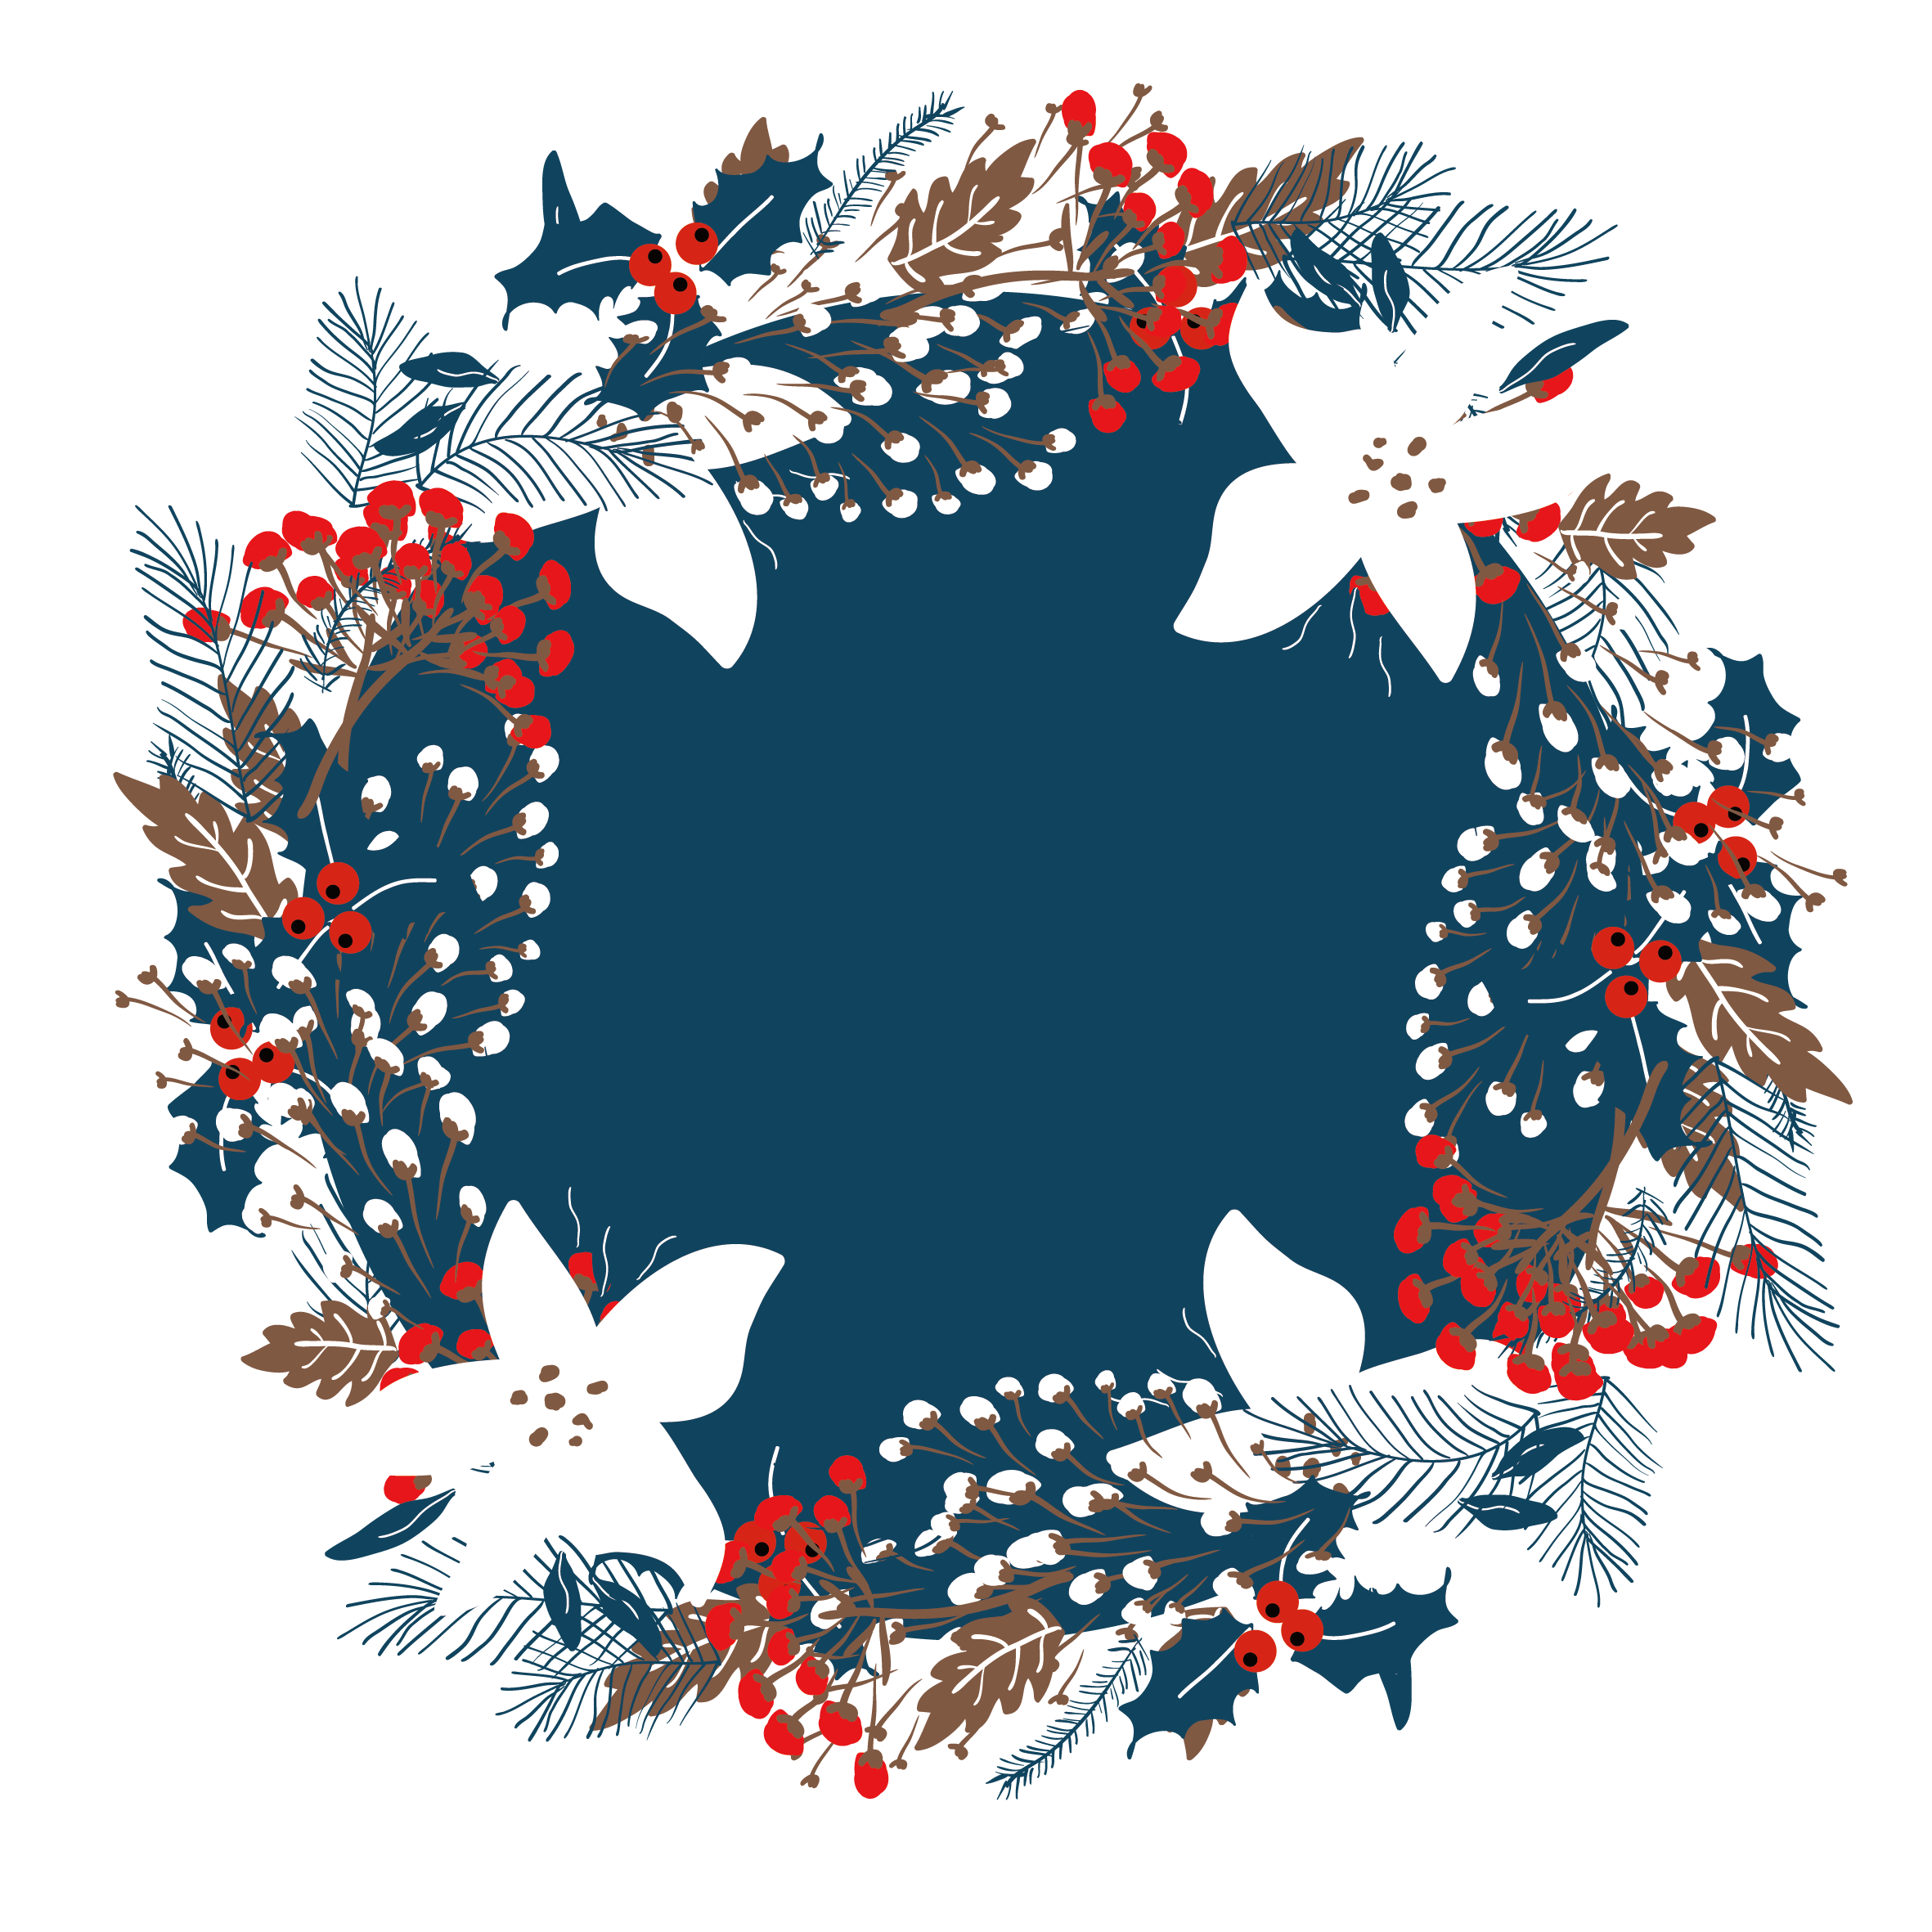 Beautiful Wreath Illustration Vector Border Christmas PNG Image